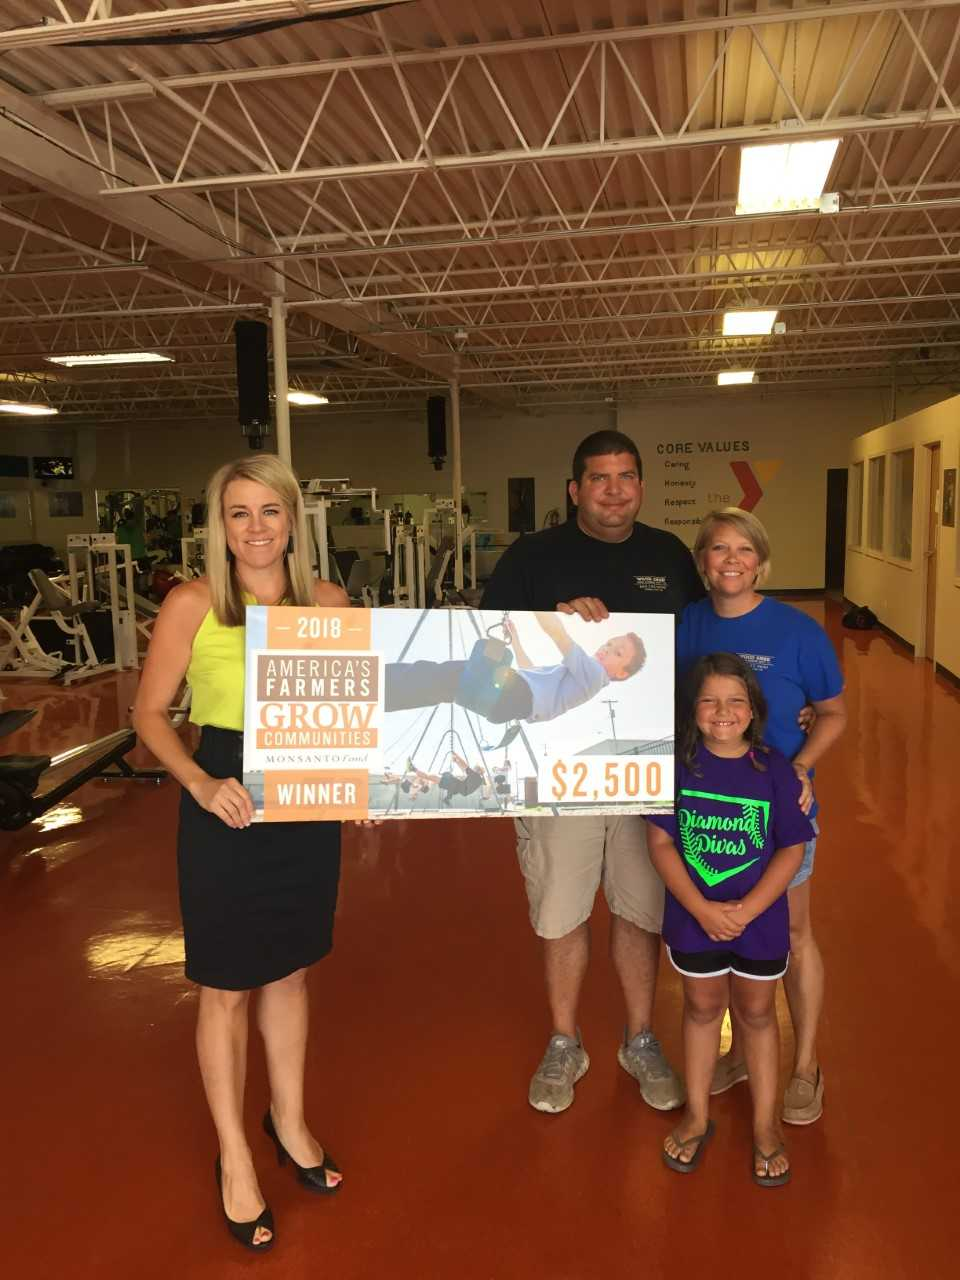 Carroll County Area YMCA awarded $2,500 donation from local Carrollton farmers